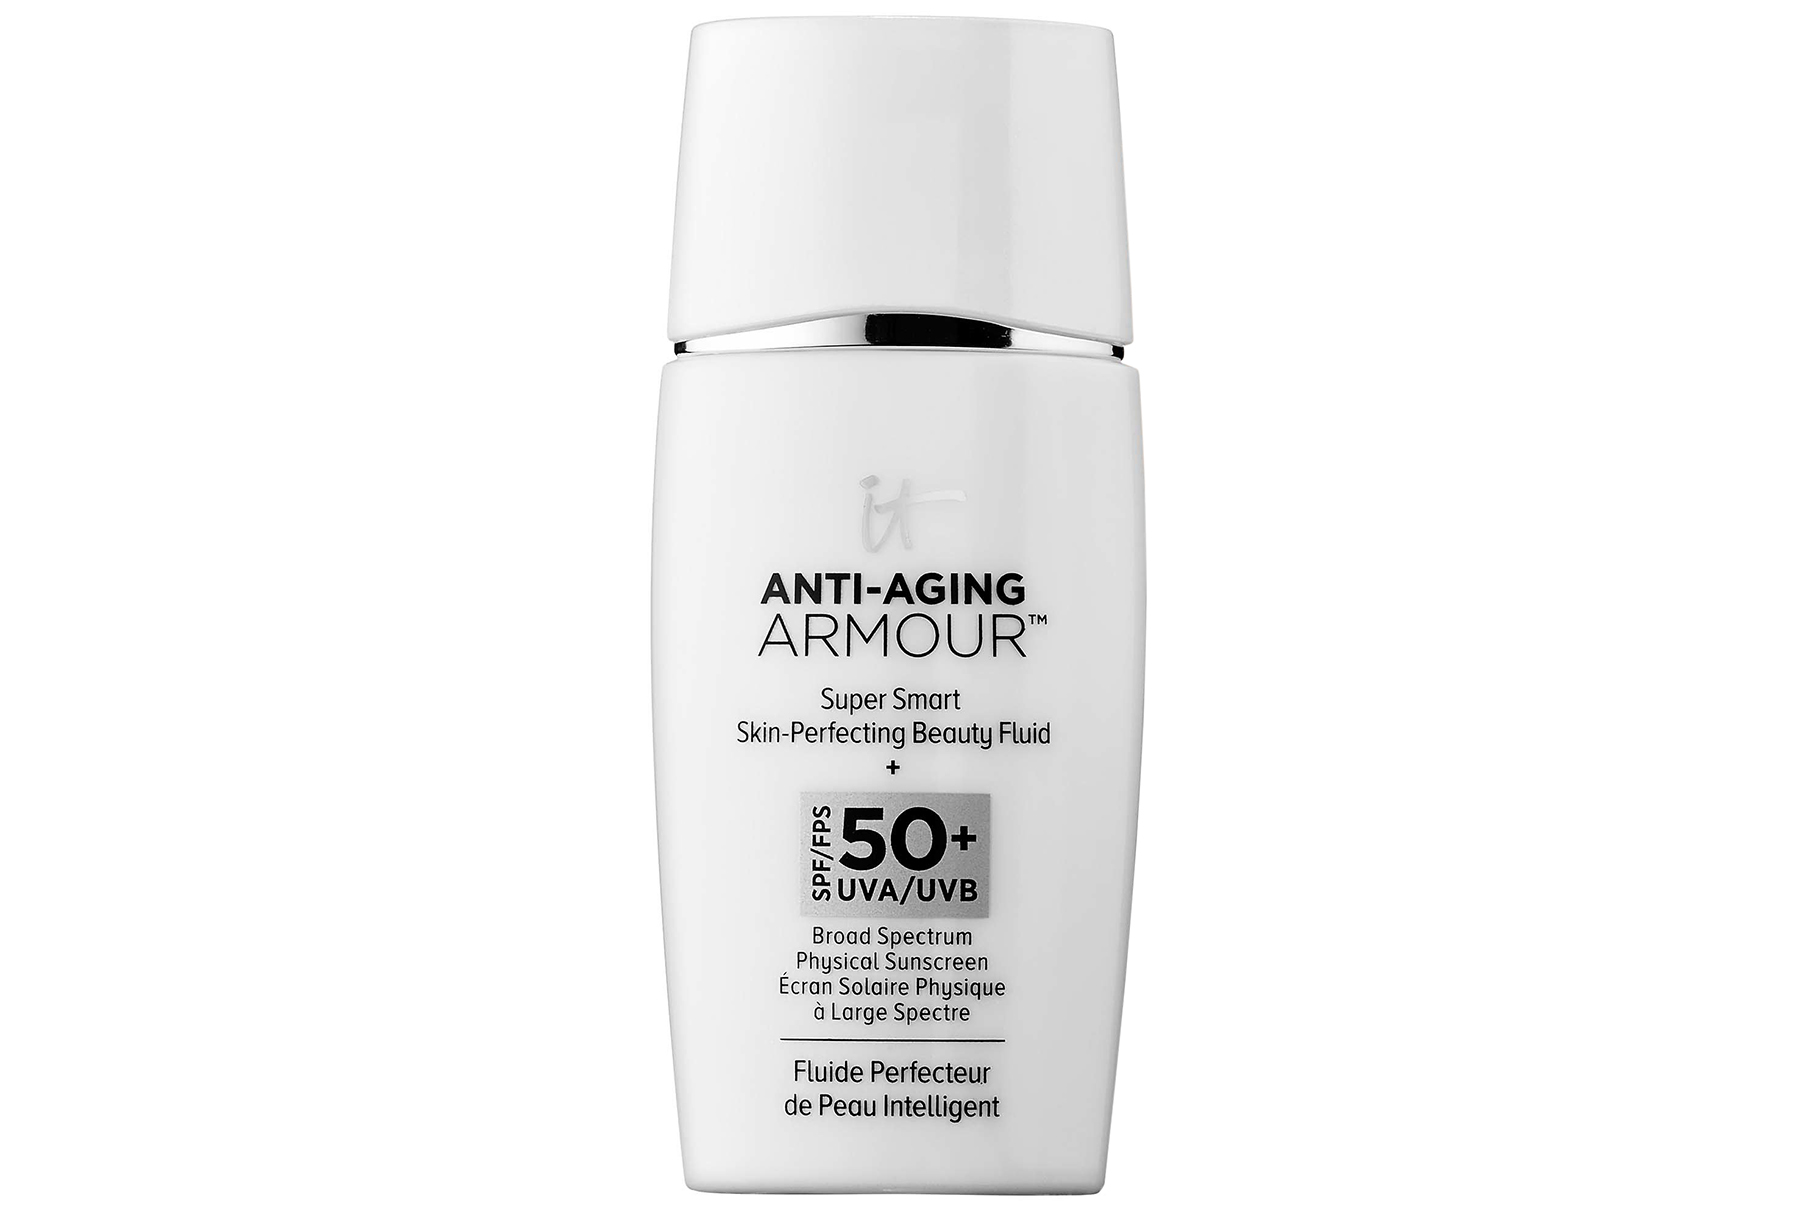 IT Cosmetics Anti-Aging Armour Super Smart Skin-Perfecting Beauty Fluid SPF 50+ (The 5 Best Selling Products from Sephora This Year)